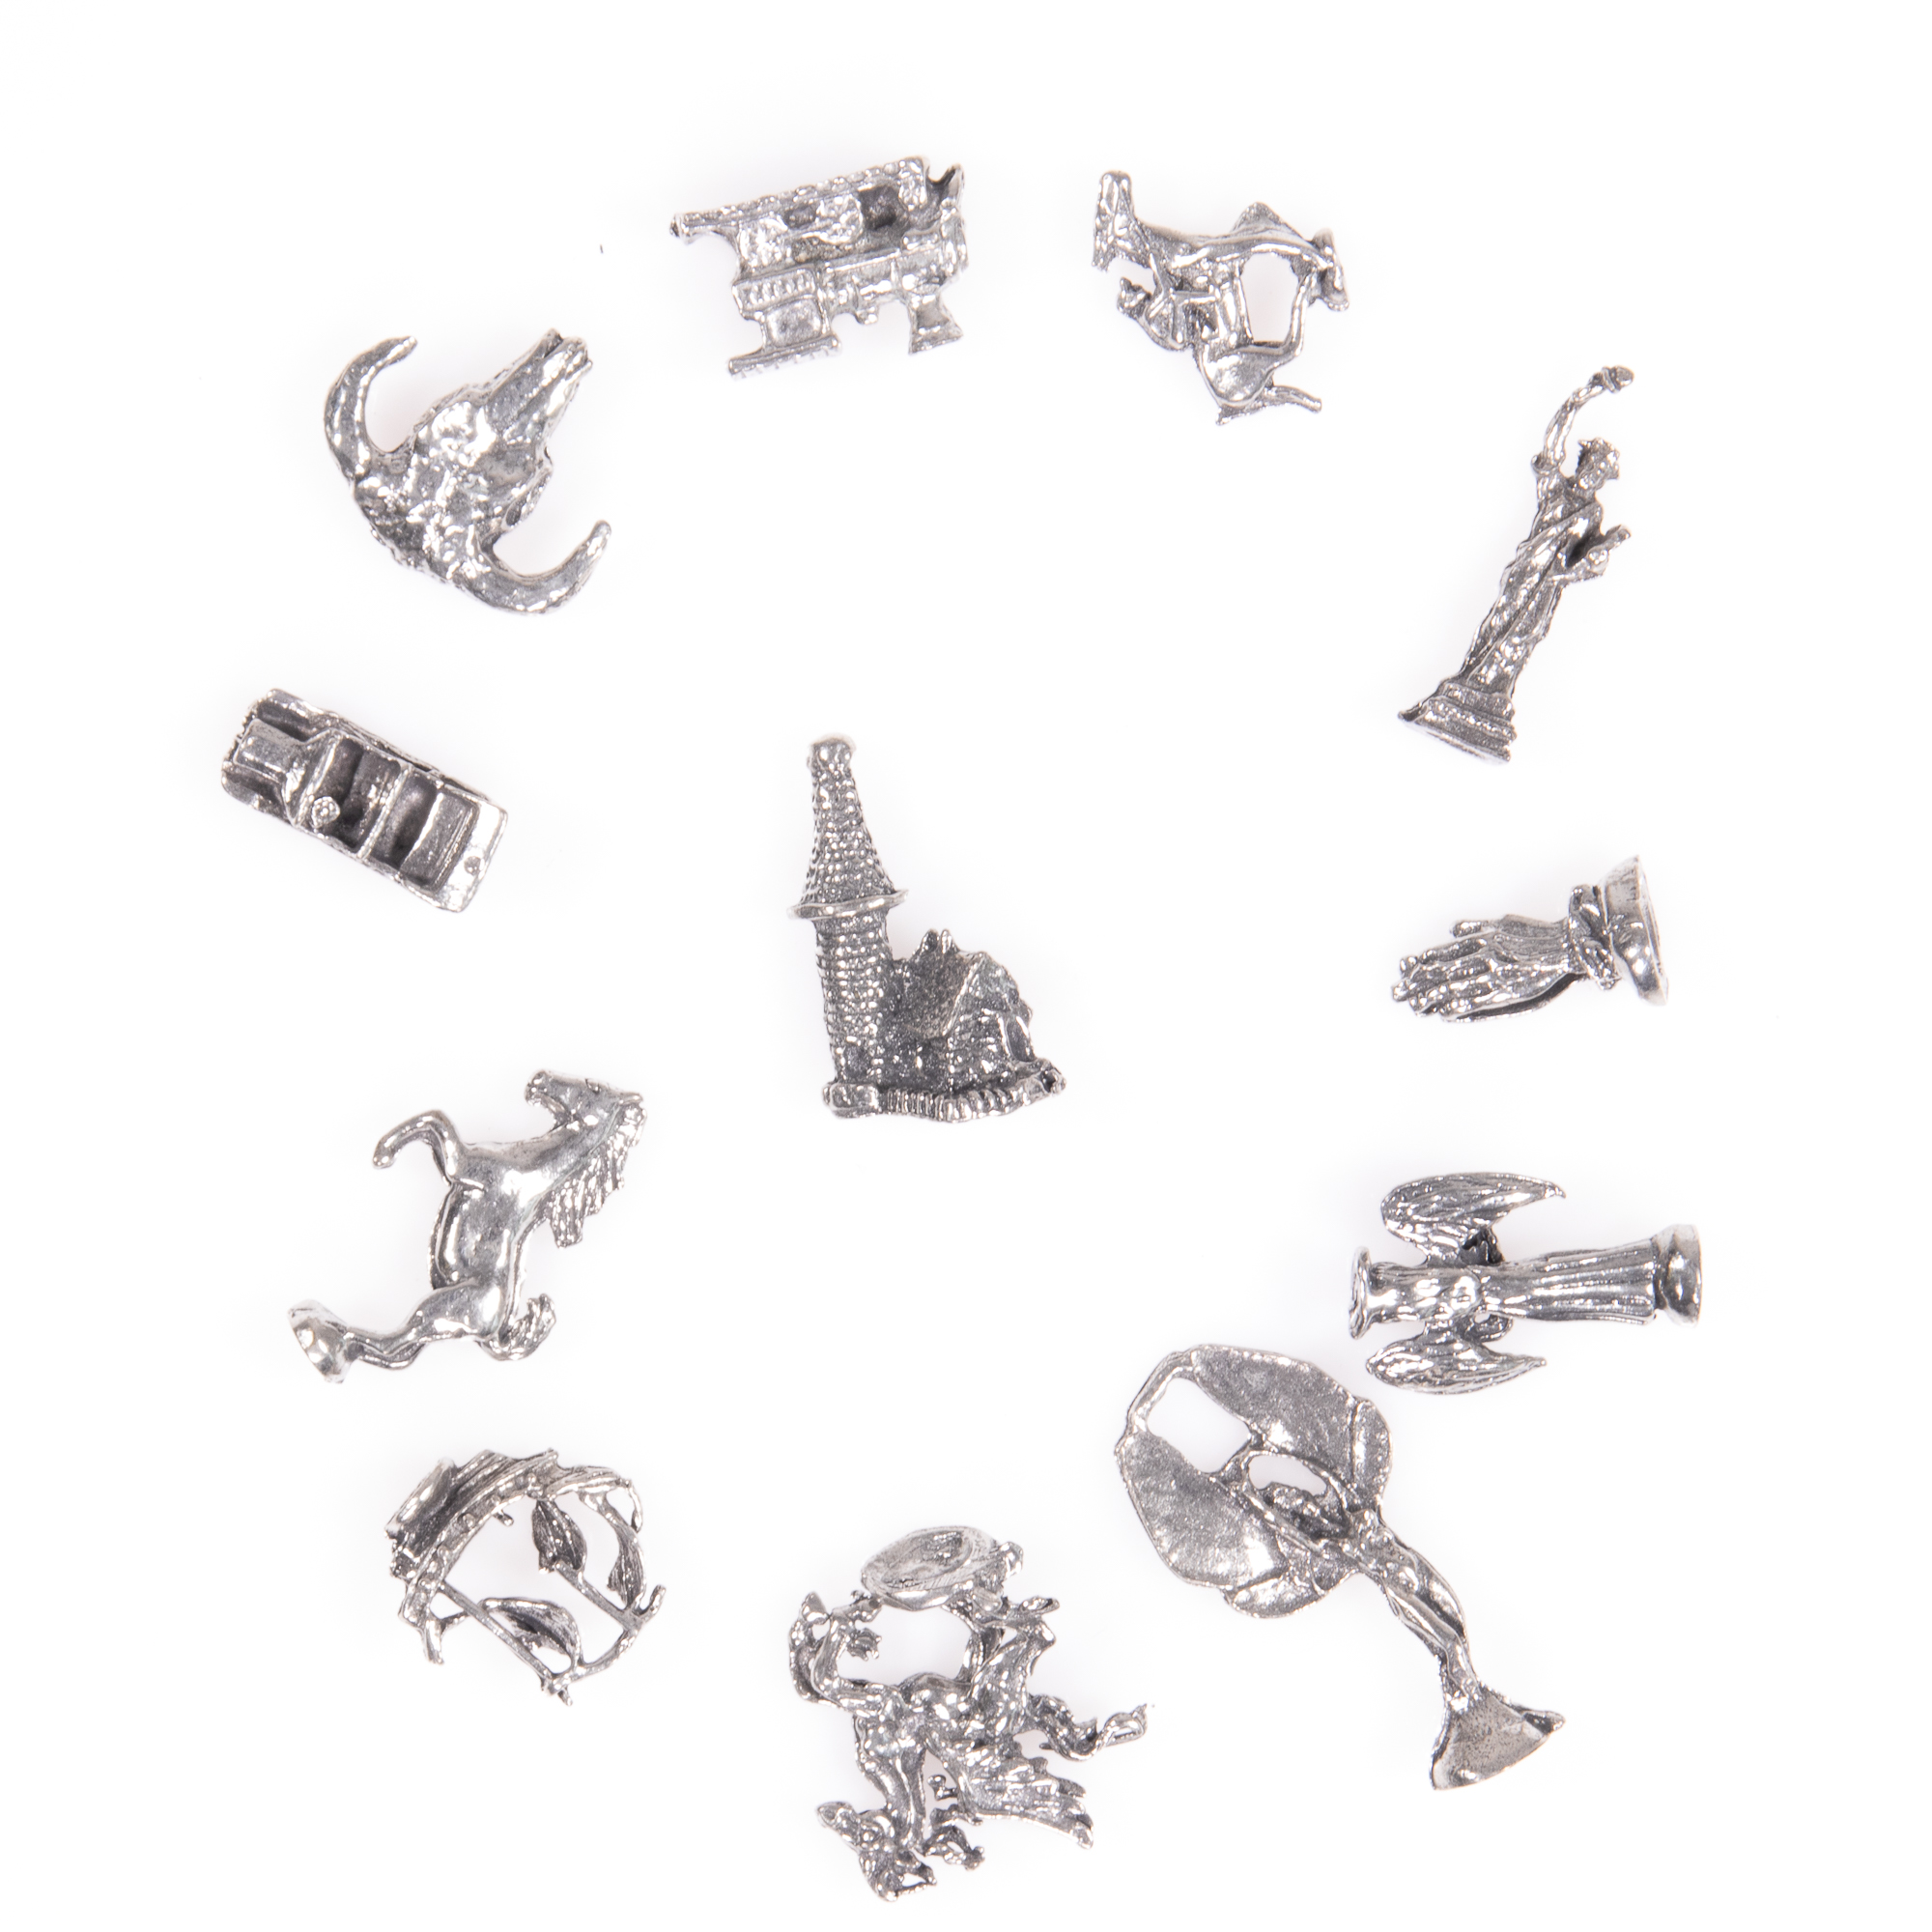 Selection of 12x Silver Novelty Charms - Image 3 of 6